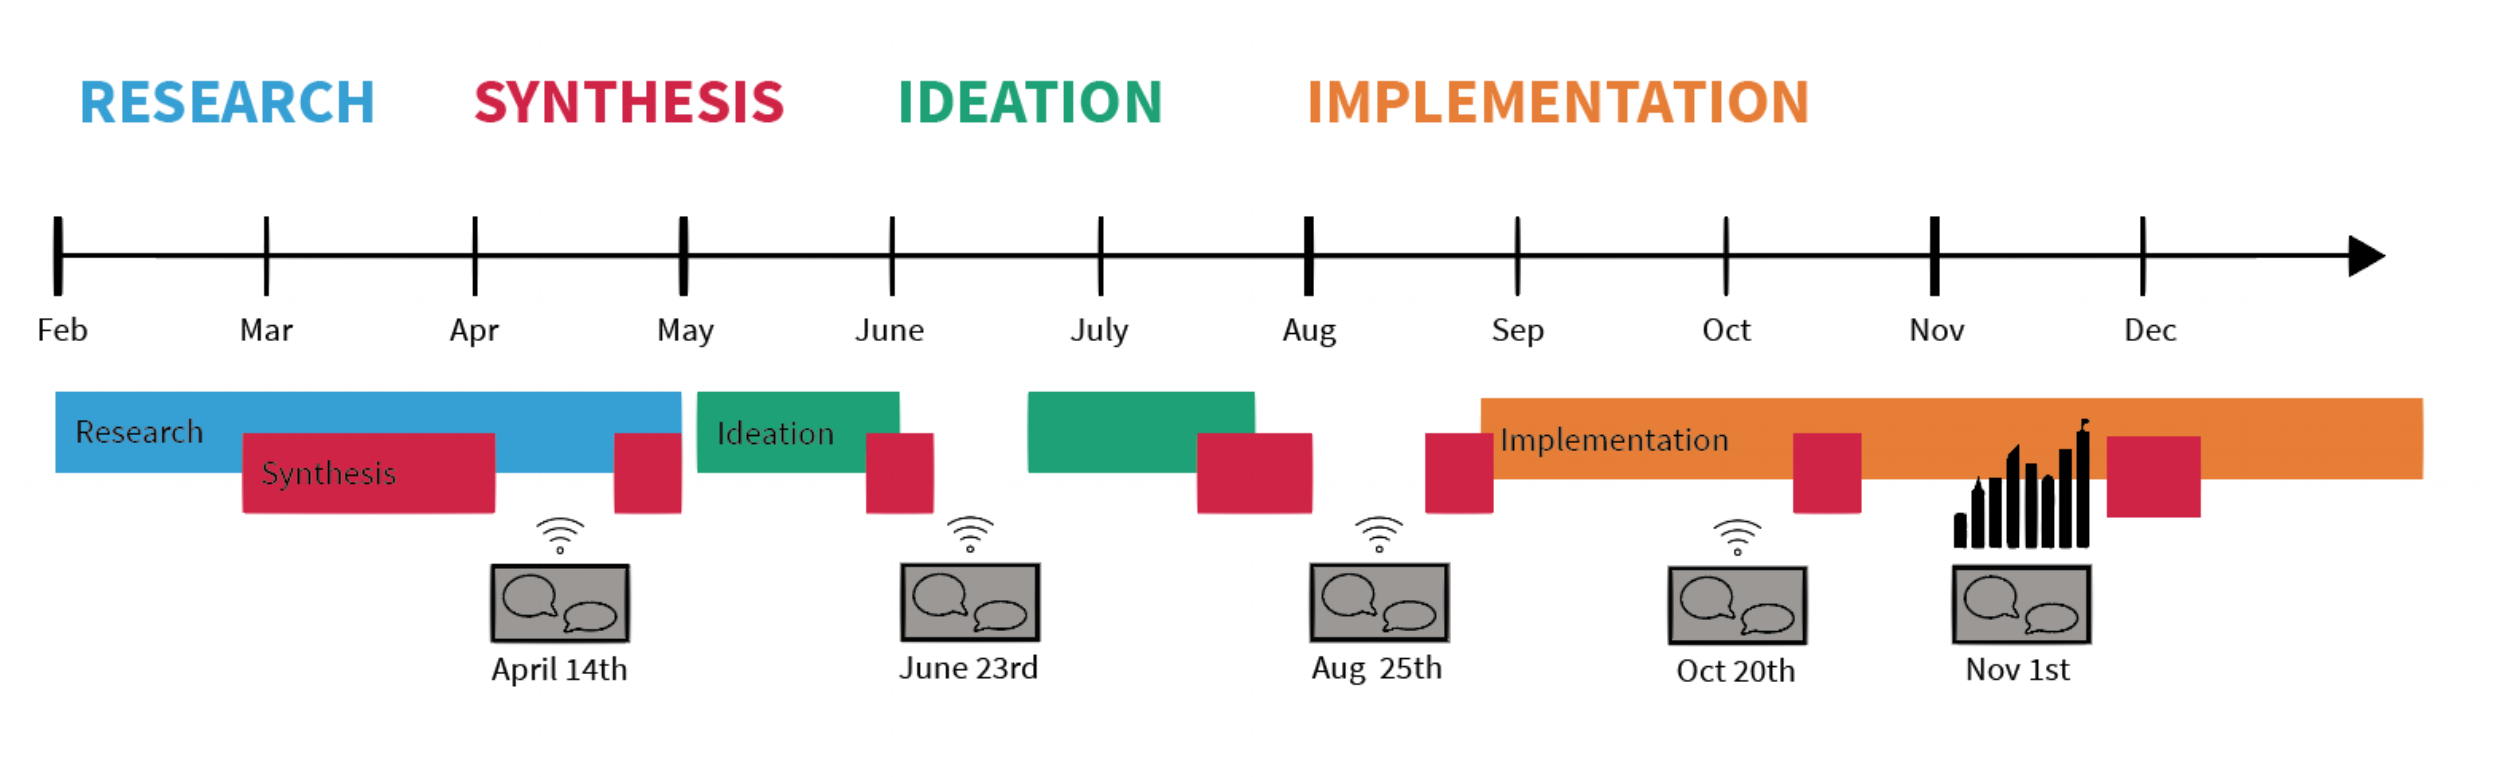 Co-creation timeline